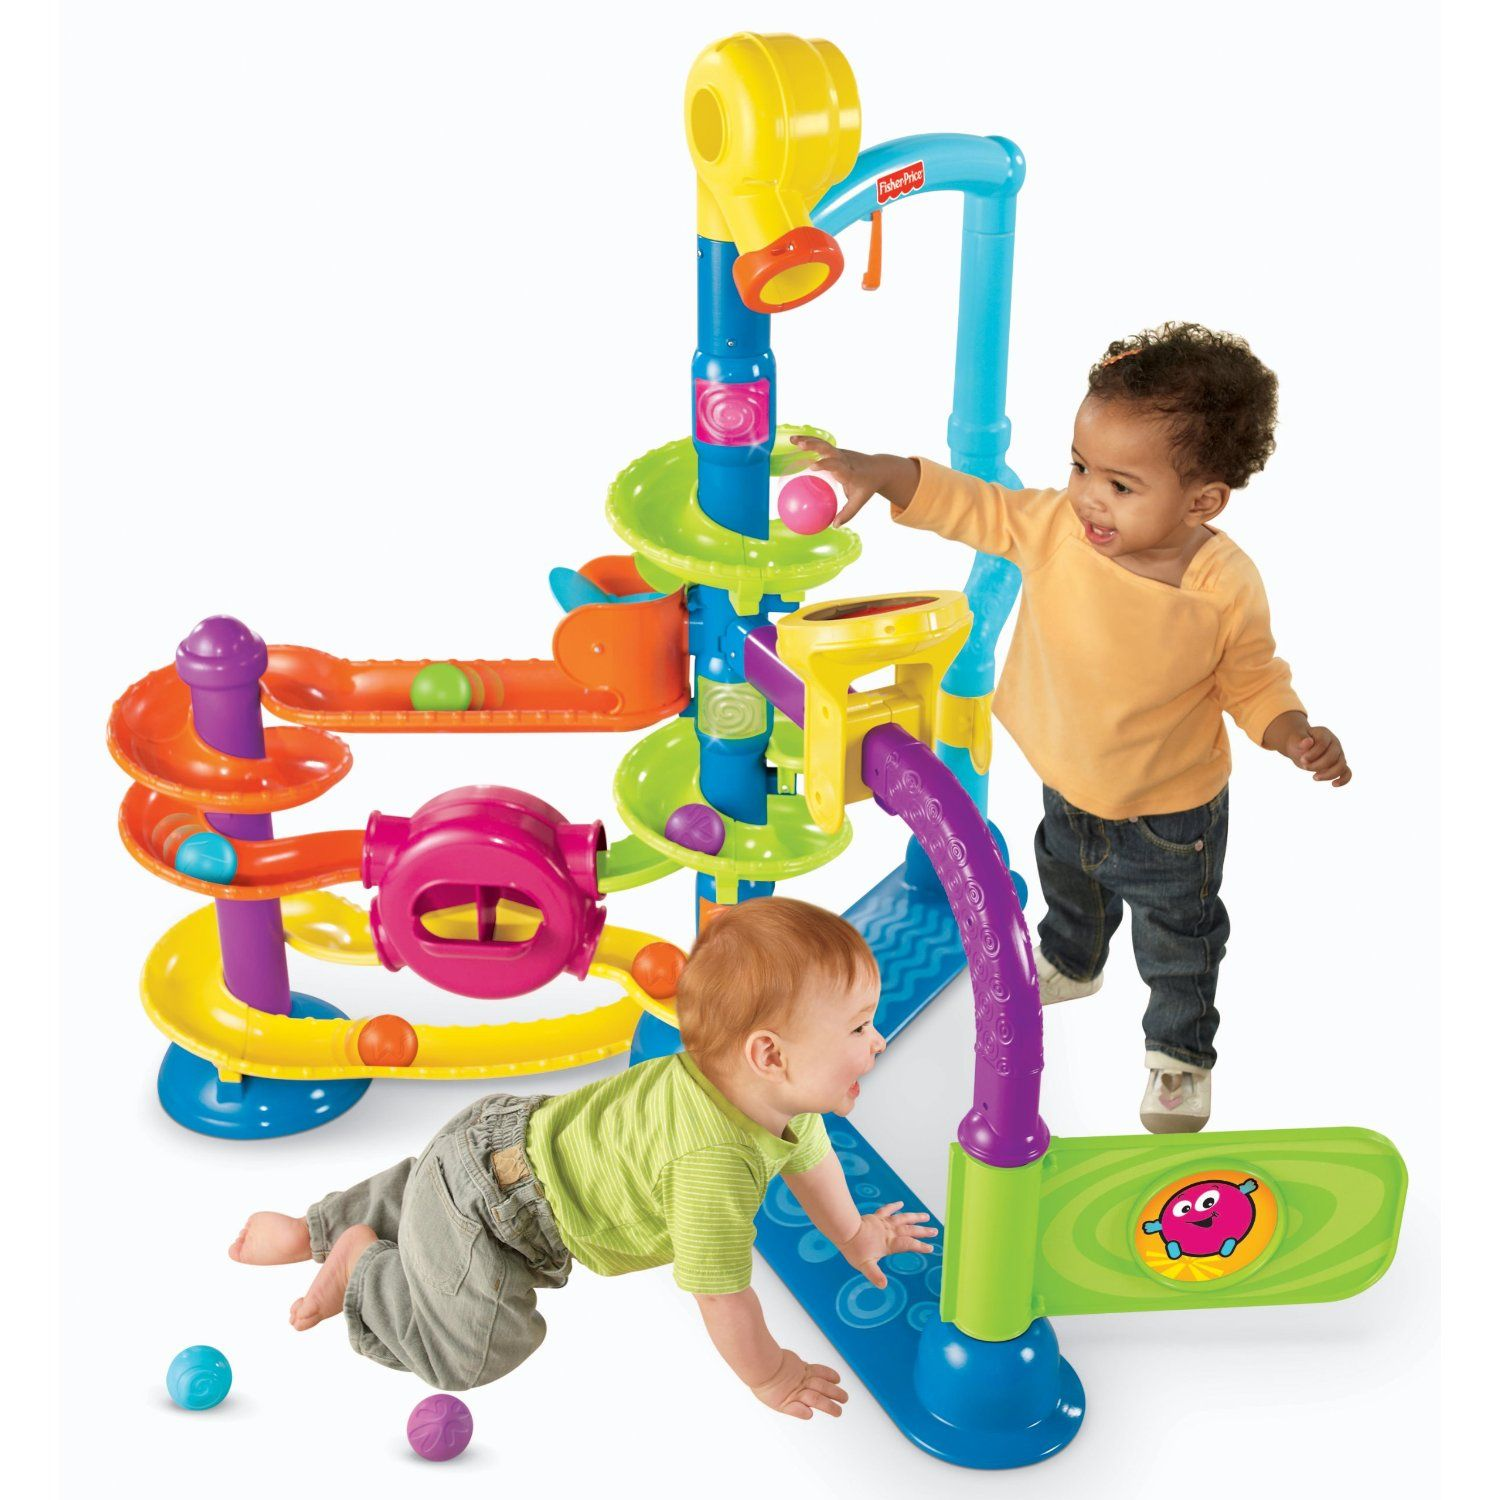 WE HAVE THIS Fisher Price Cruise and Groove Ballapalooza